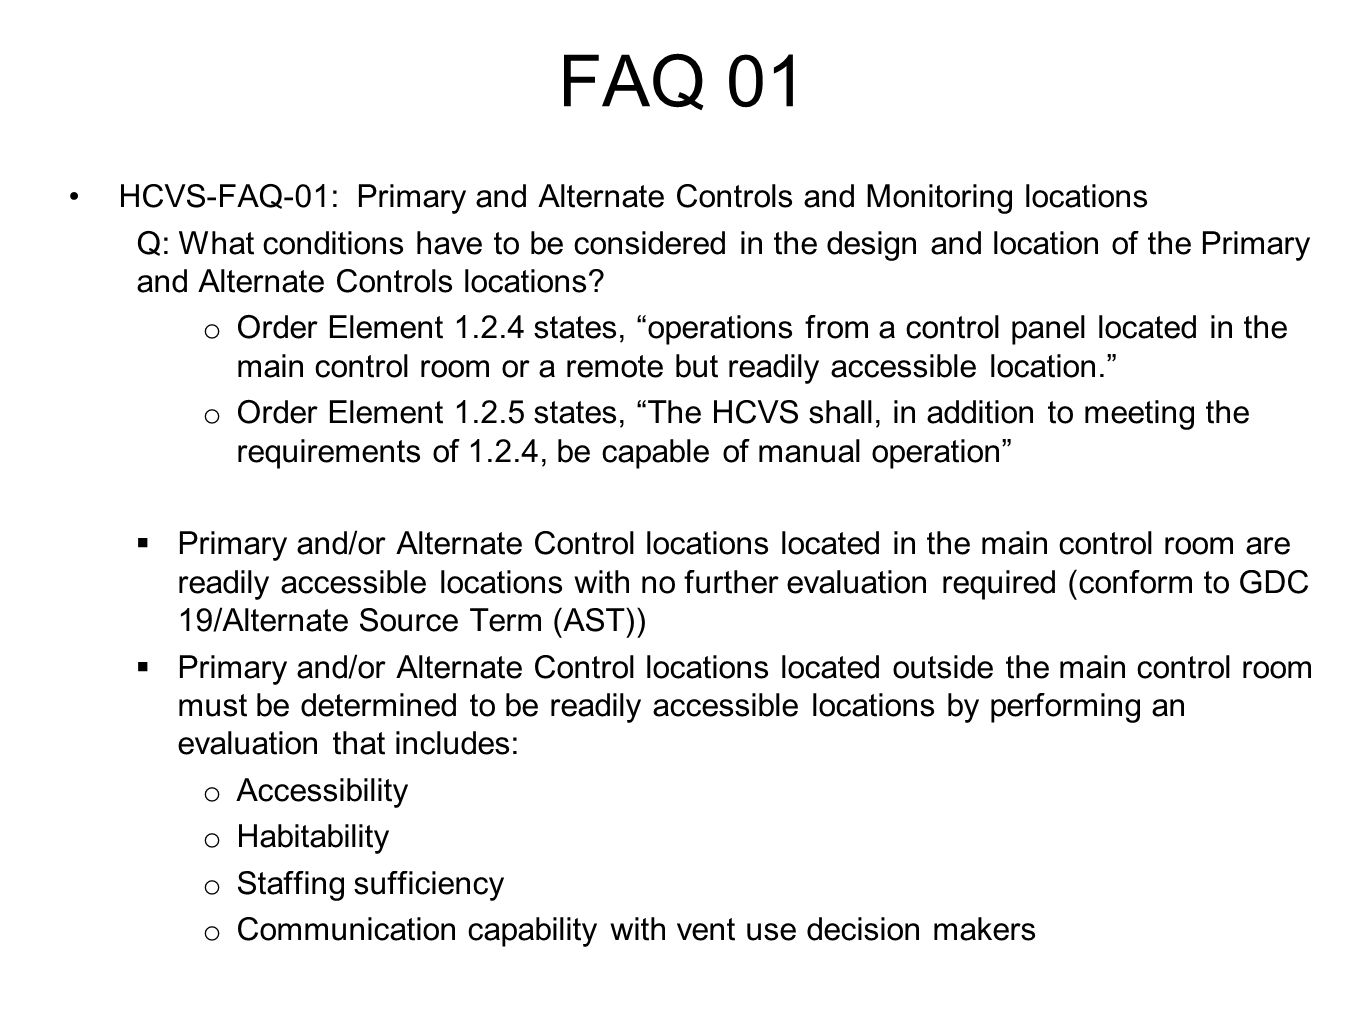 FAQ 01 HCVS-FAQ-01: Primary and Alternate Controls and Monitoring locations.